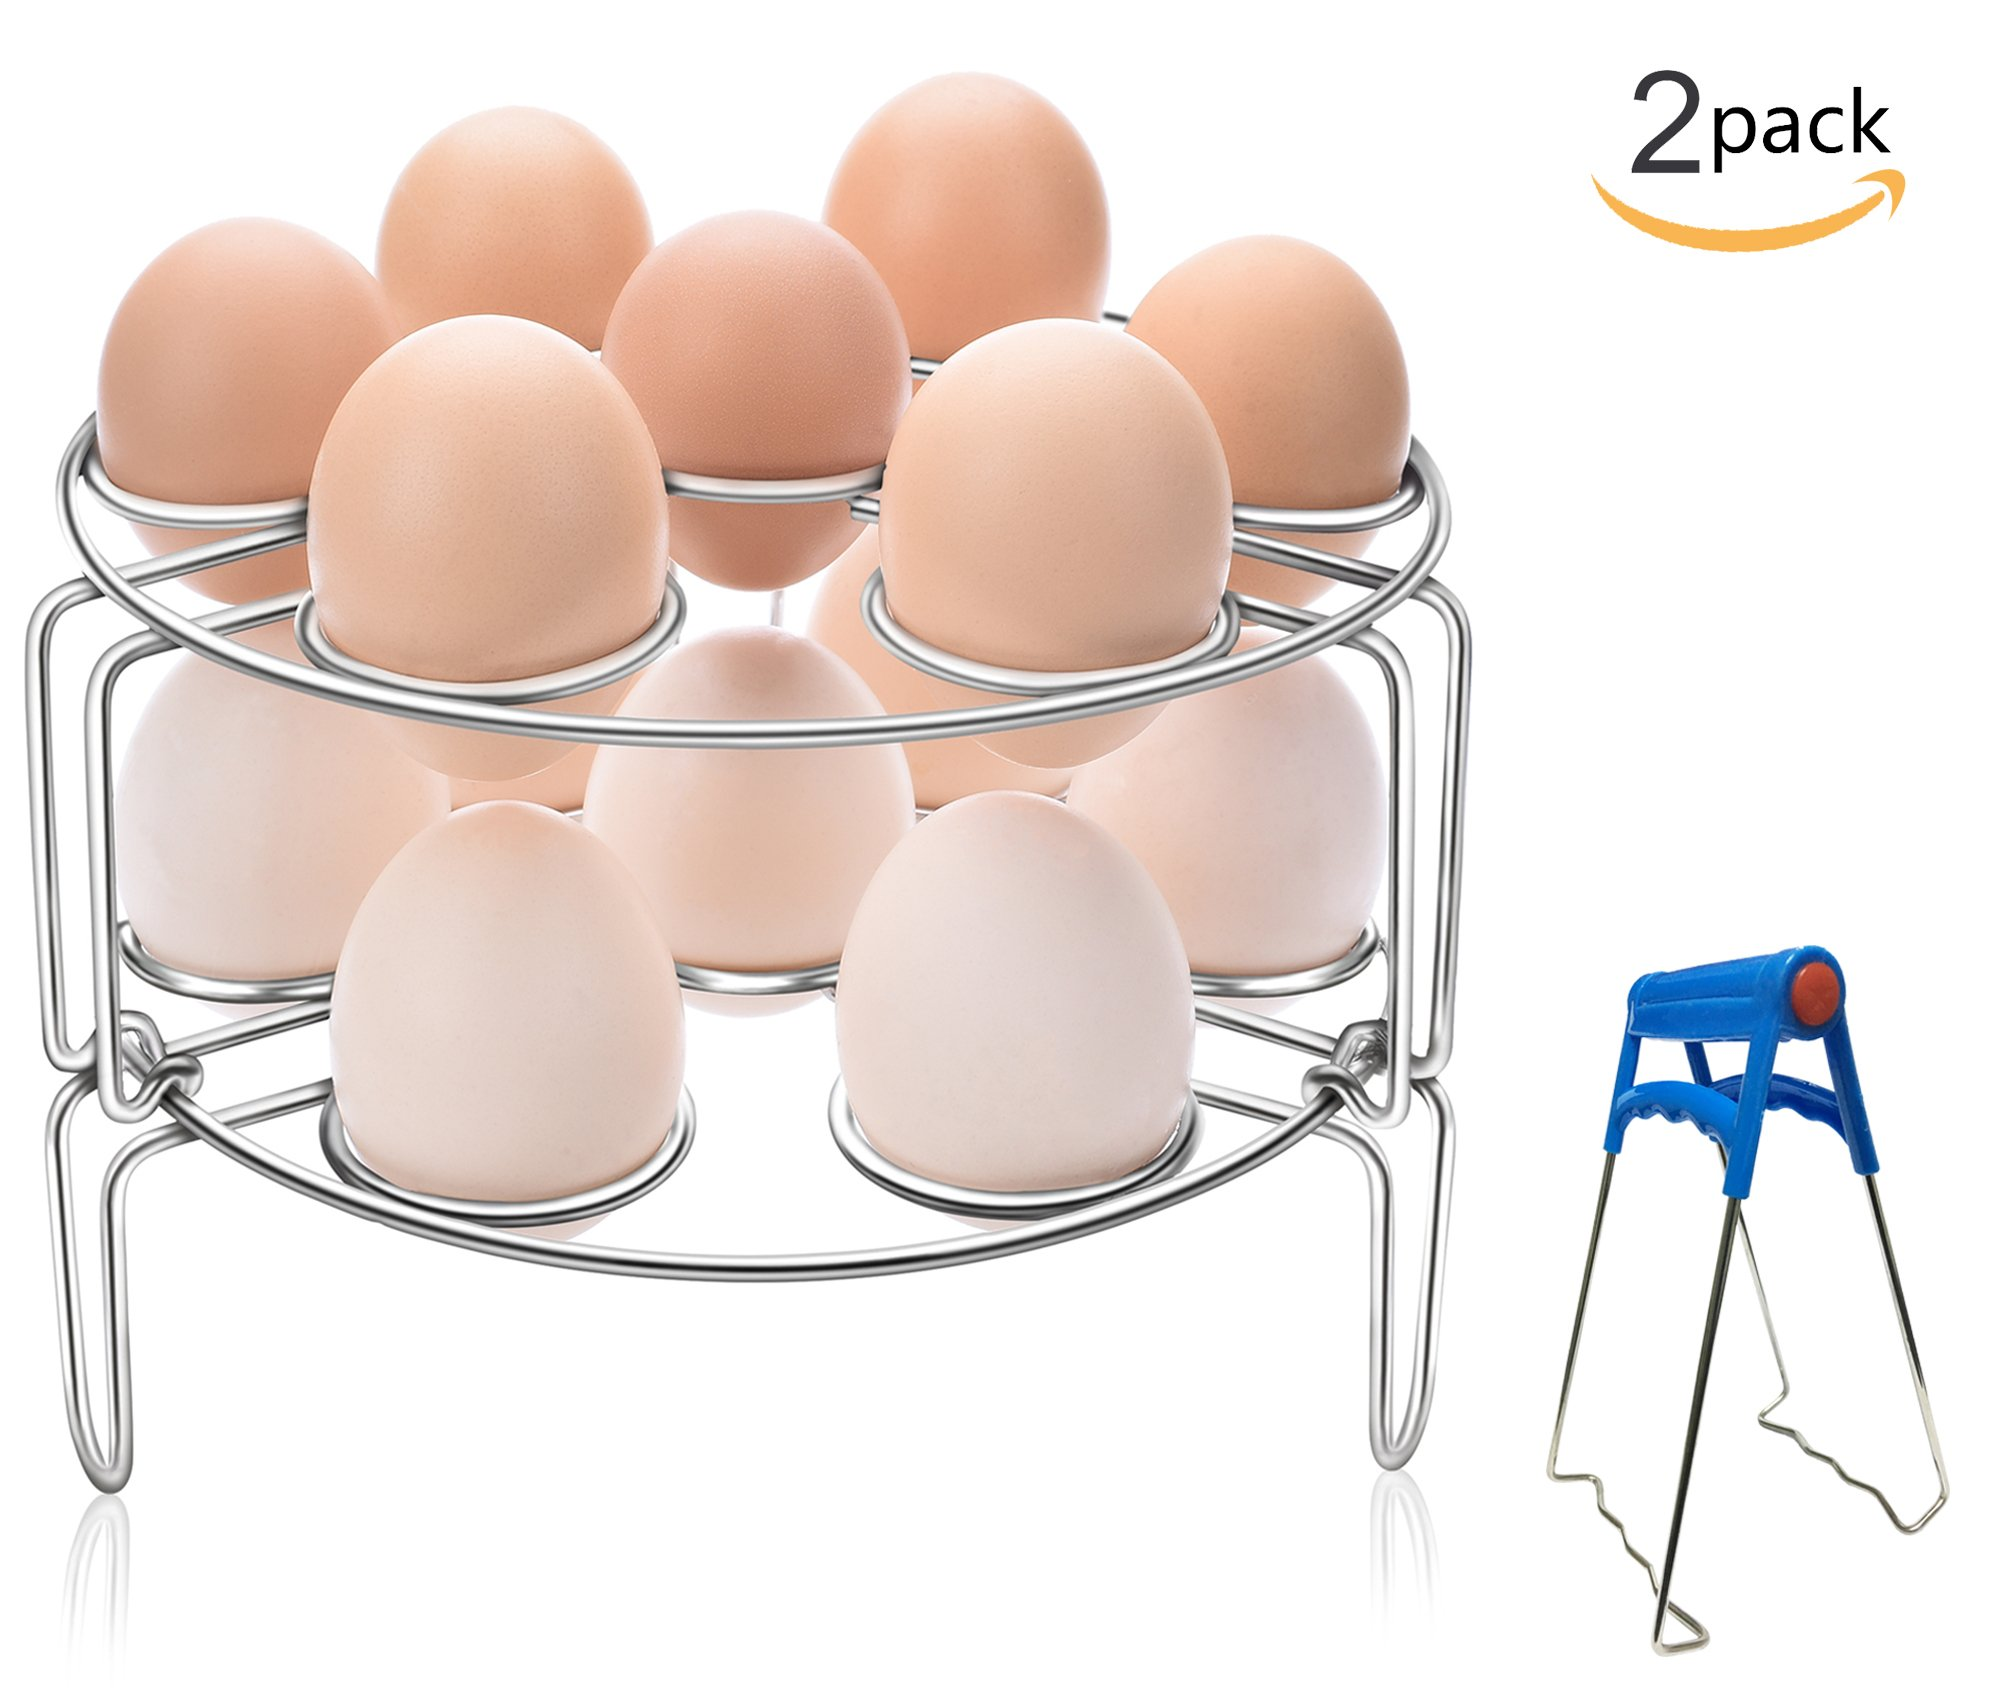 Egg Steamer Rack GUOXUAN 2-Pack Stainless Steel Kitchen Trivet Stackable Vegetable Steam Rack for Instant Pot And Pressure Cooker Accessories